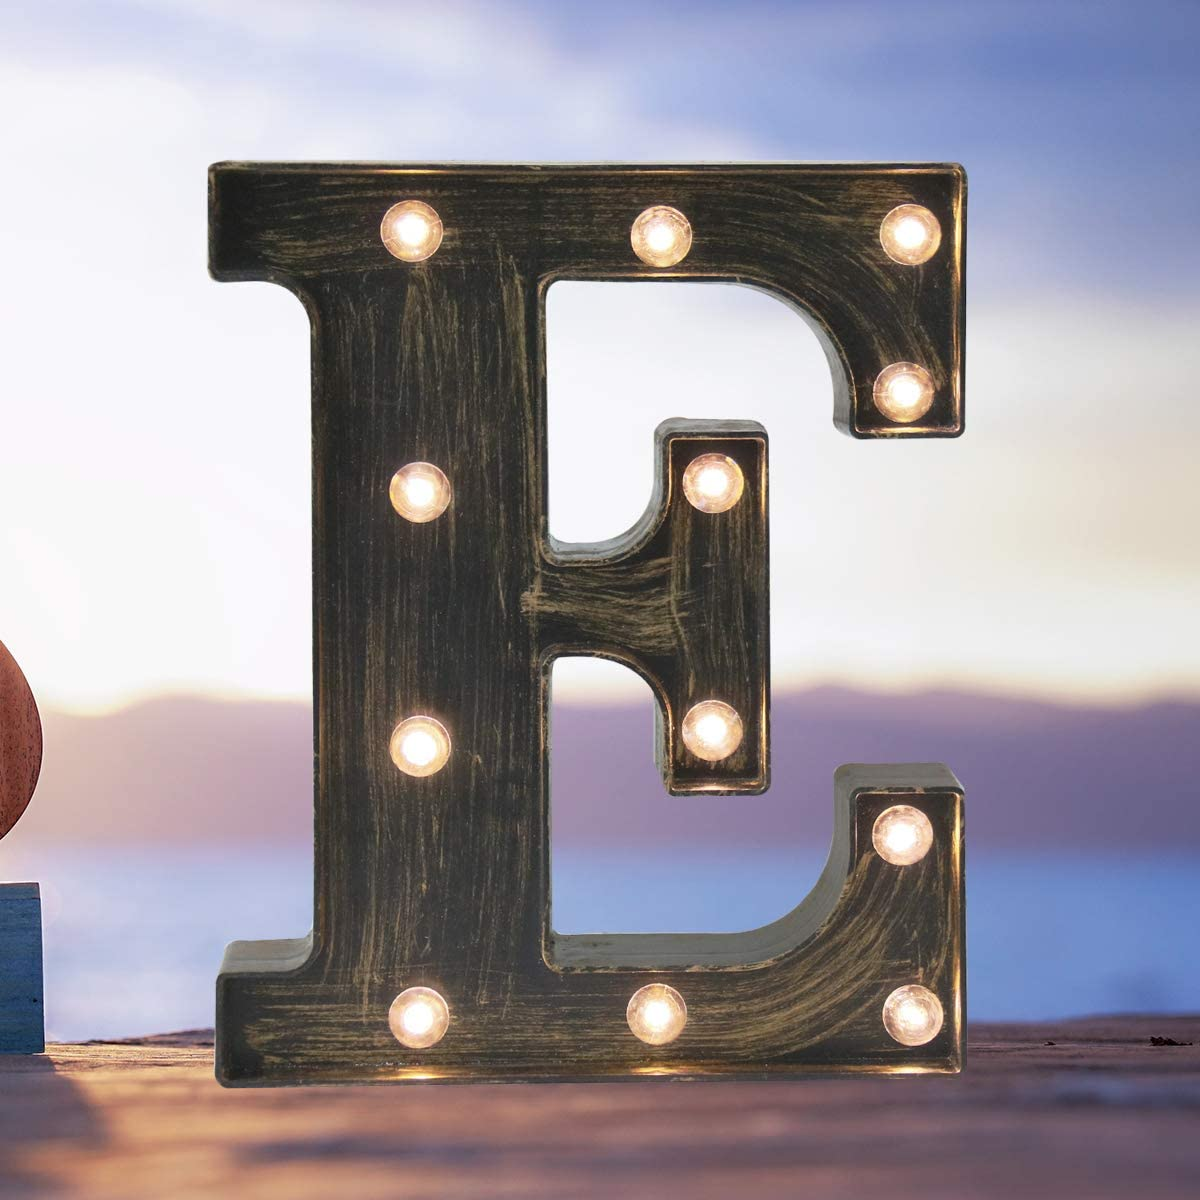 Industrial LED Marquee Letter Lights 26 Alphabet Light Up Name Sign Vintage Style Letter Lamp for Birthday Party Christmas Perfect for Events or Home Bar Decor(Letter E)